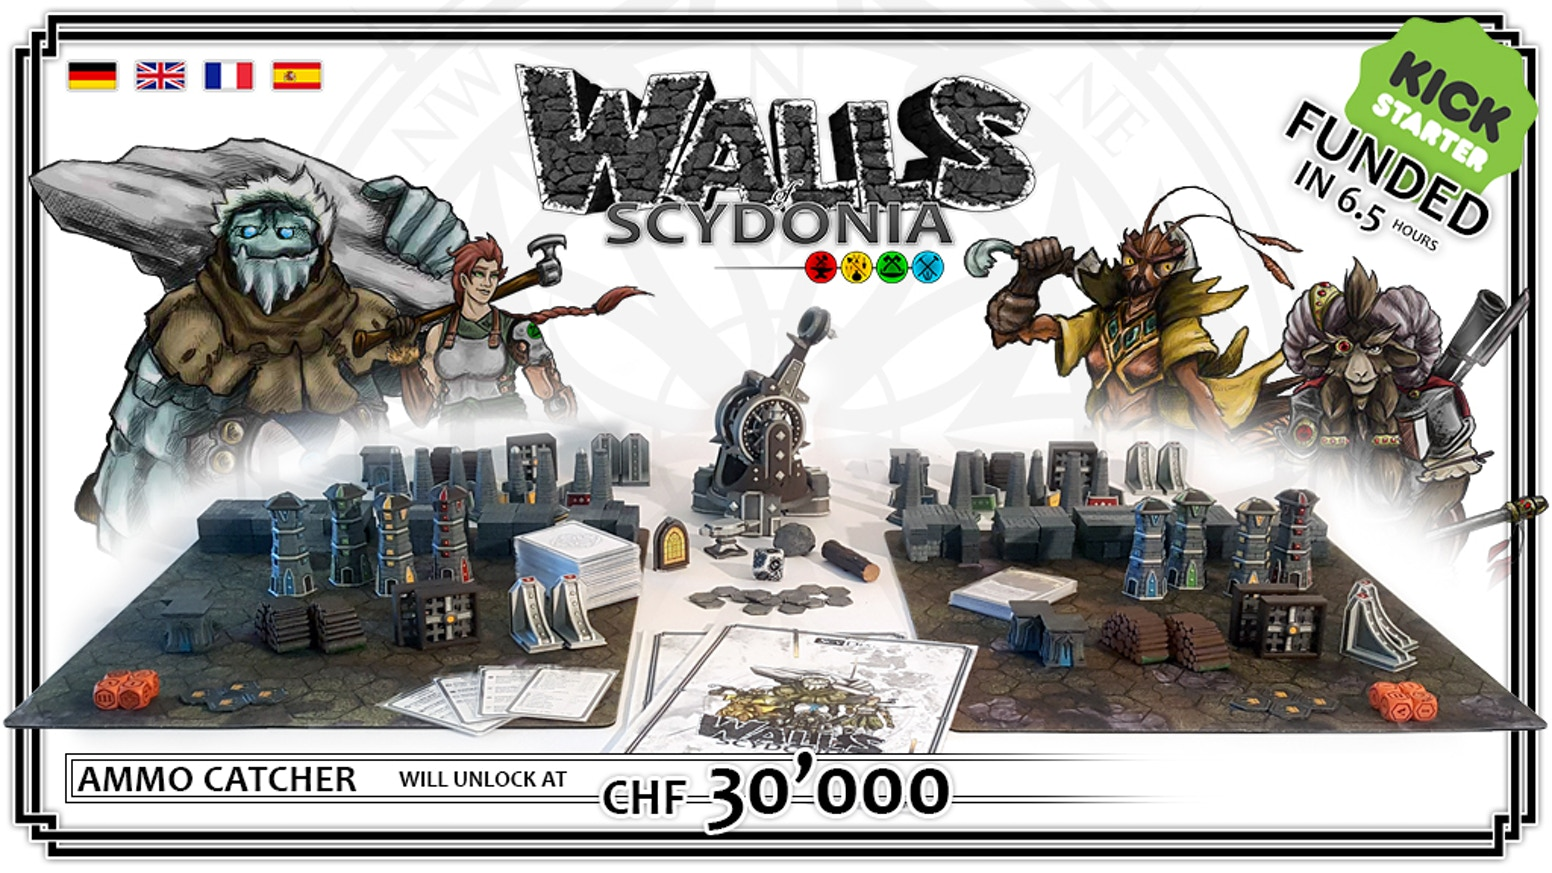 Make wise decisions and take down your opponents towers with a real catapult, while defending your own with wall stones and supports.